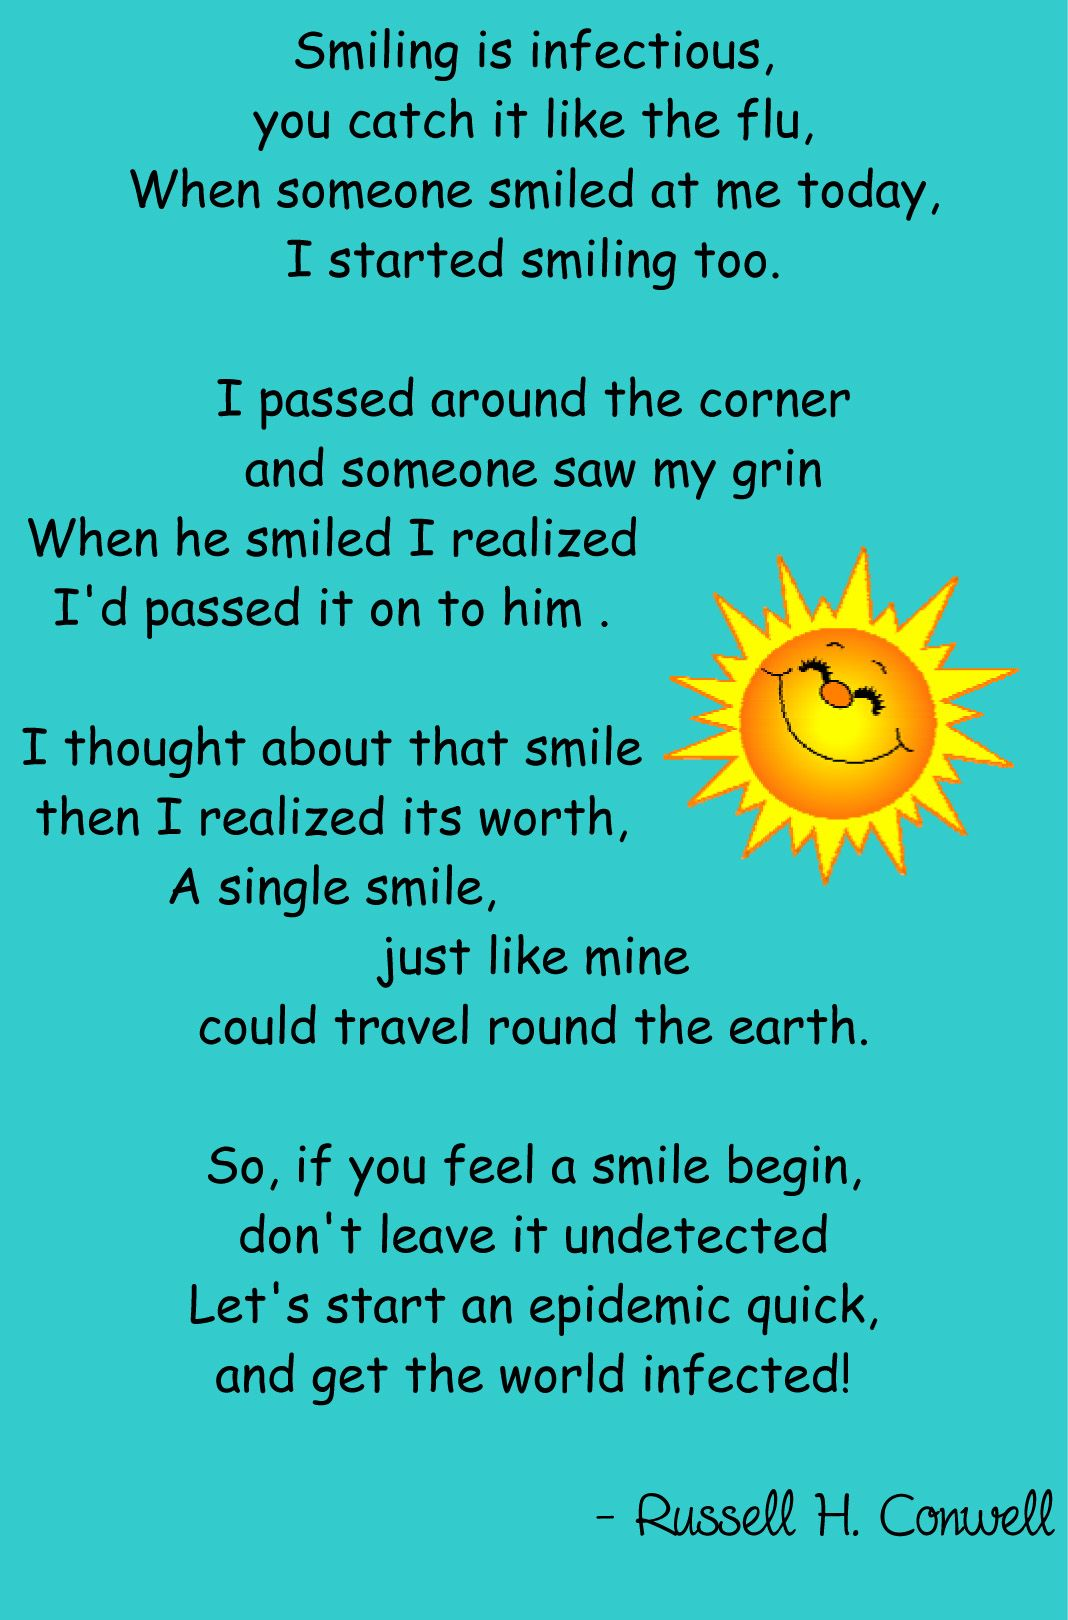 Smile poems and quotes - Smile Poem Good Things Going Around By Lisa Desatnik